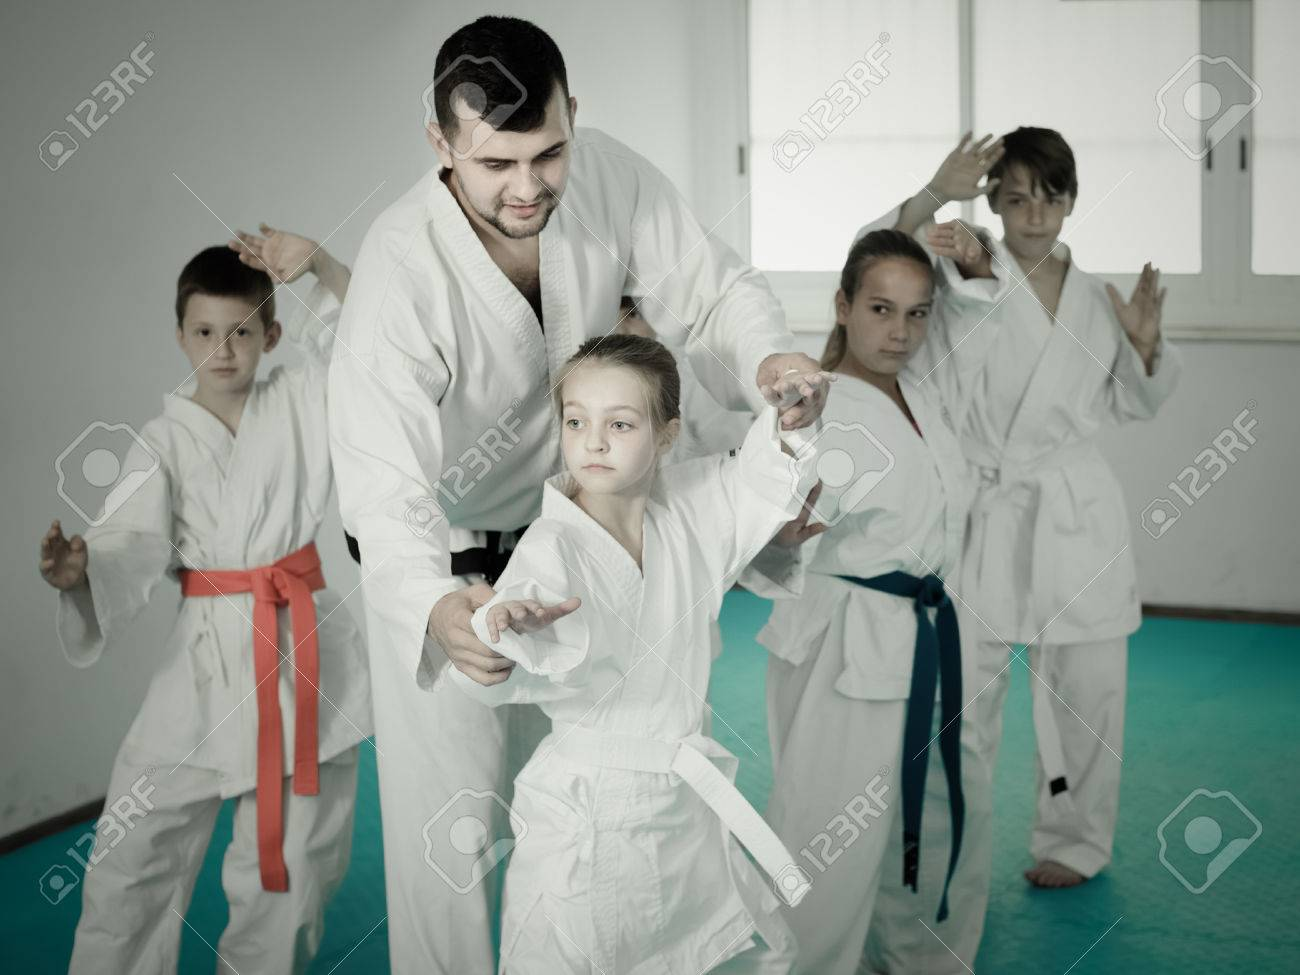 Young children doing karate kicks with male coach during karate